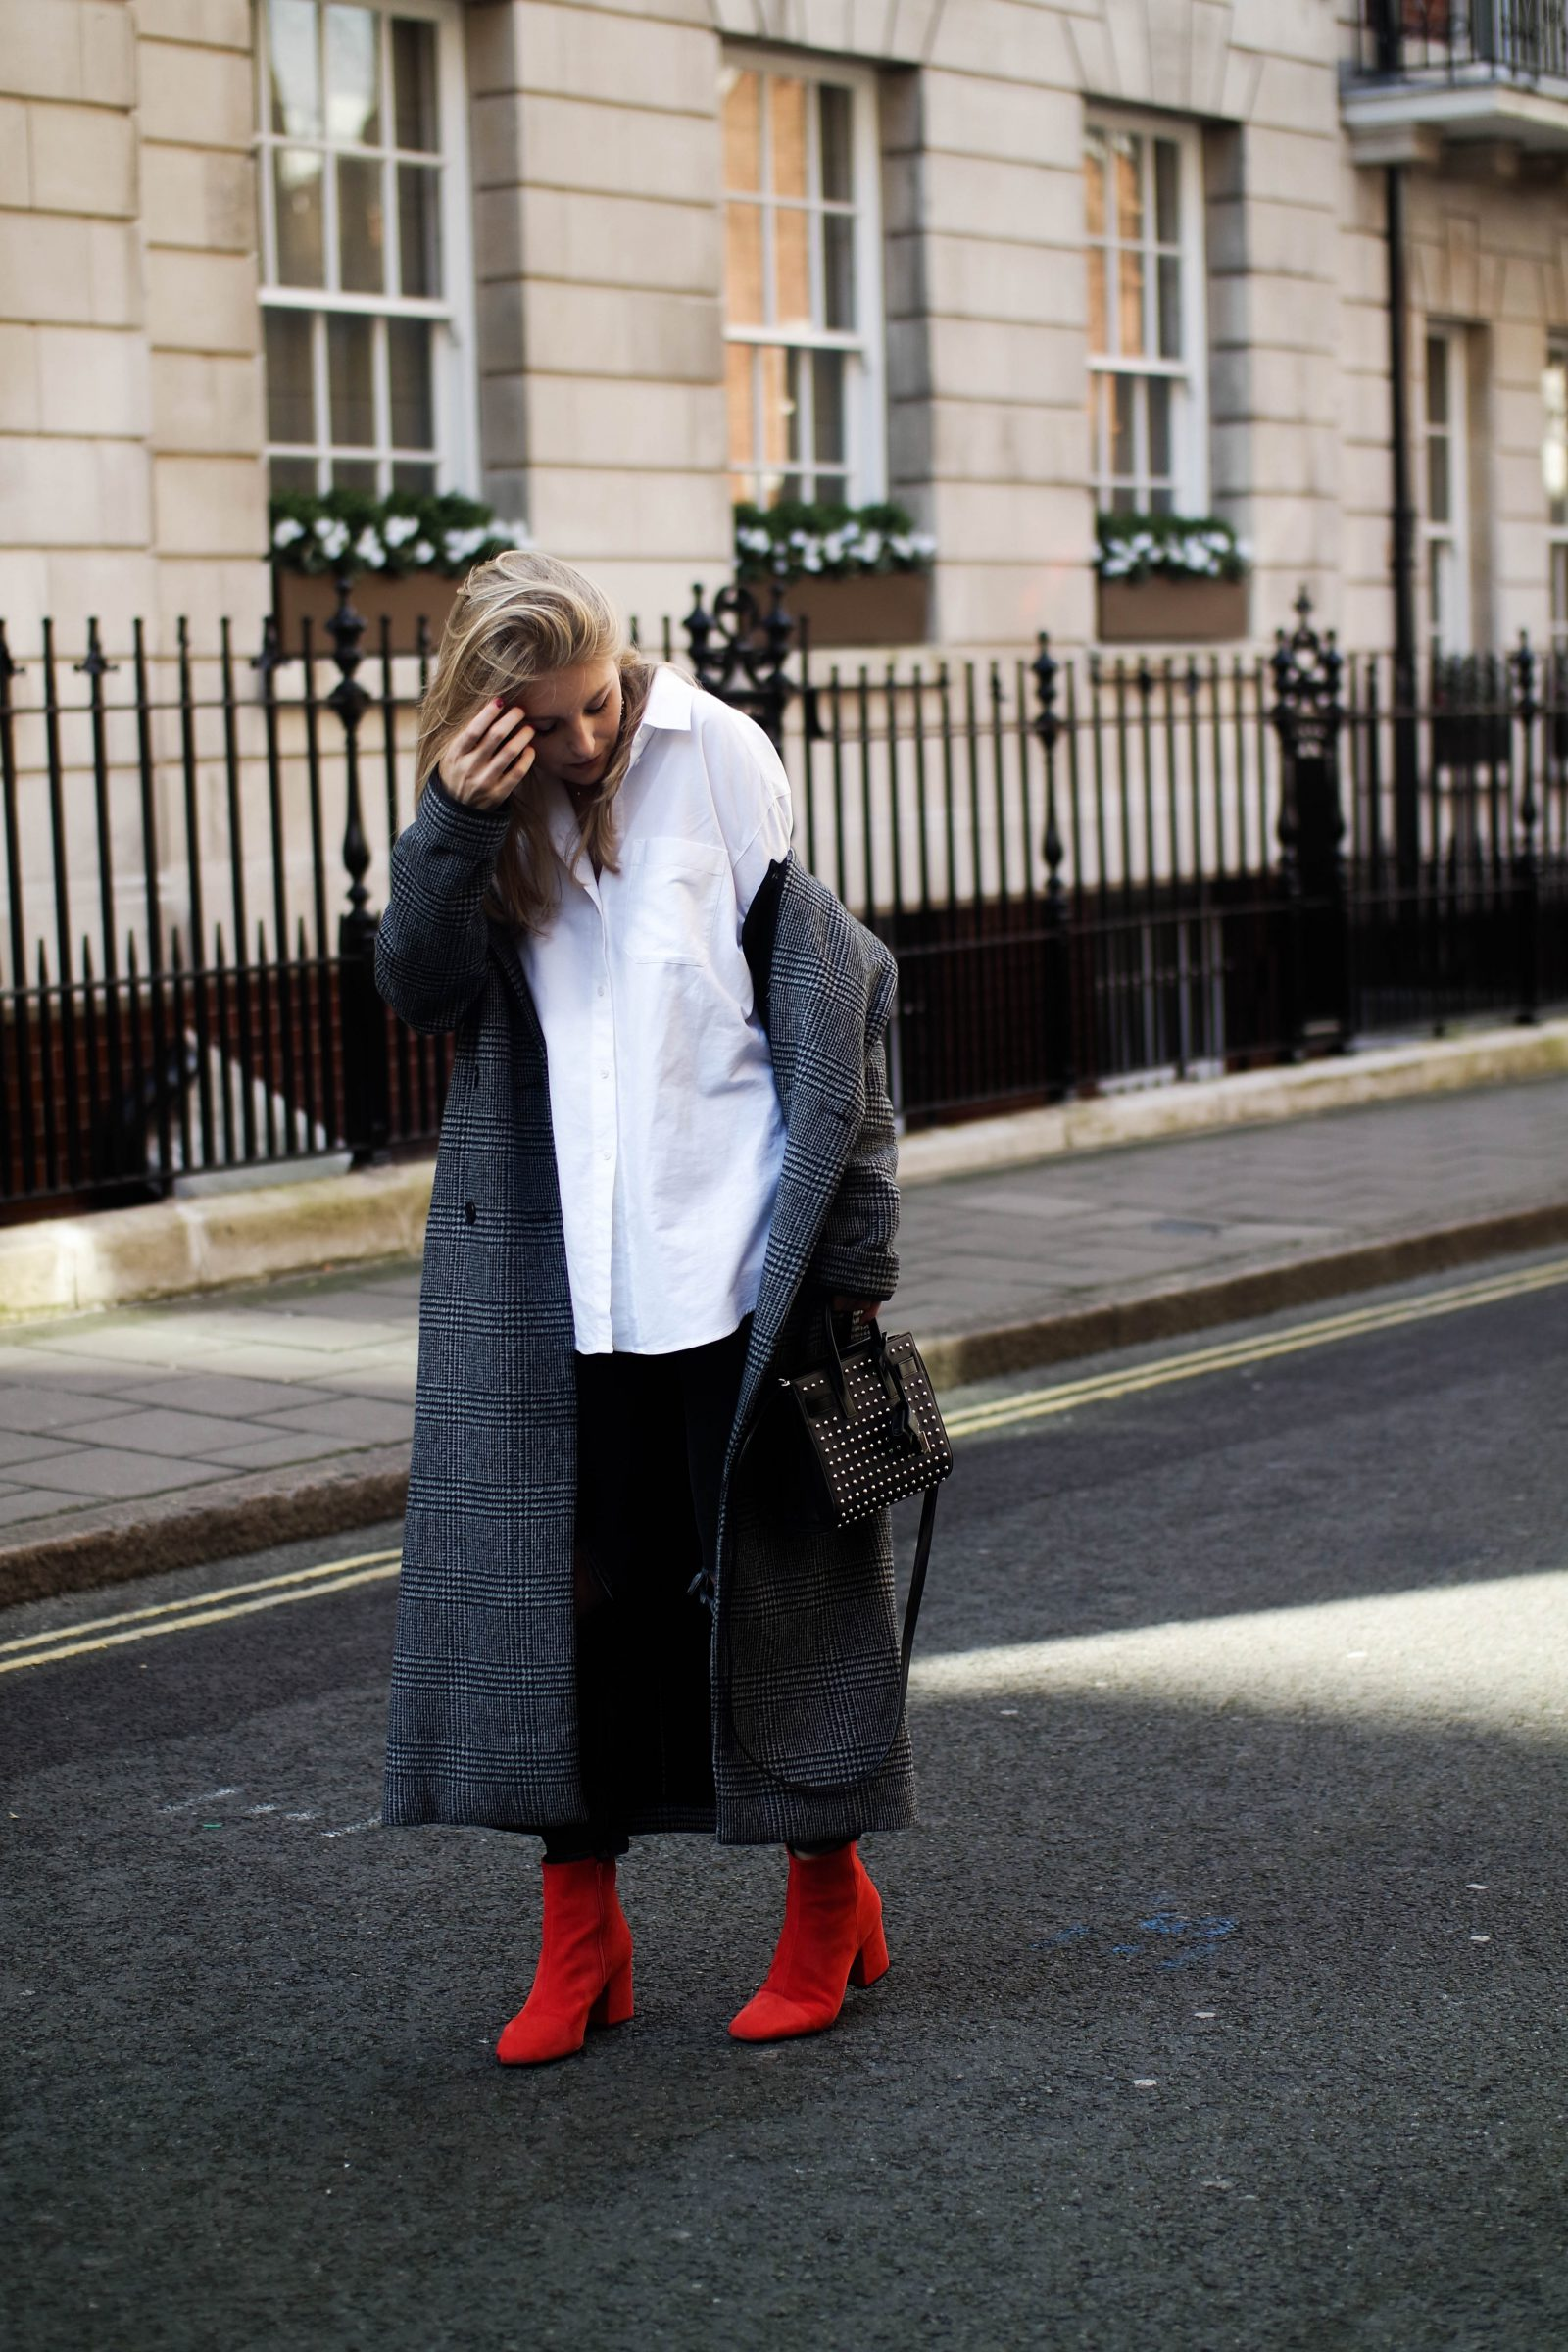 LFW Day 3 Keeping It Monochrome - Red Boots